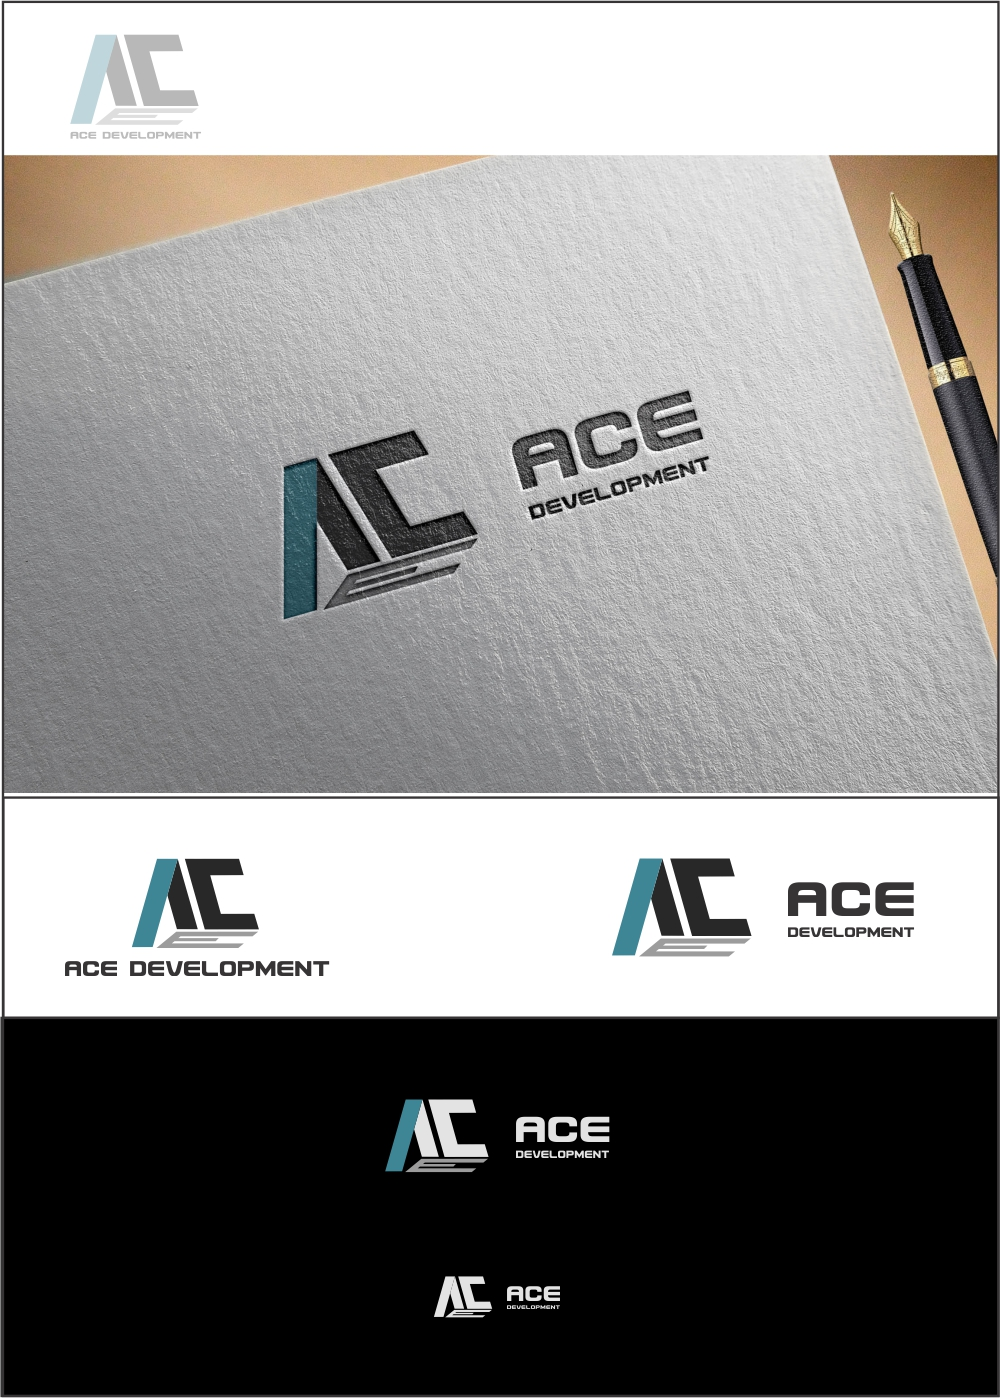 Logo Design by ian69 - Entry No. 11 in the Logo Design Contest Fun Logo Design for Ace development.